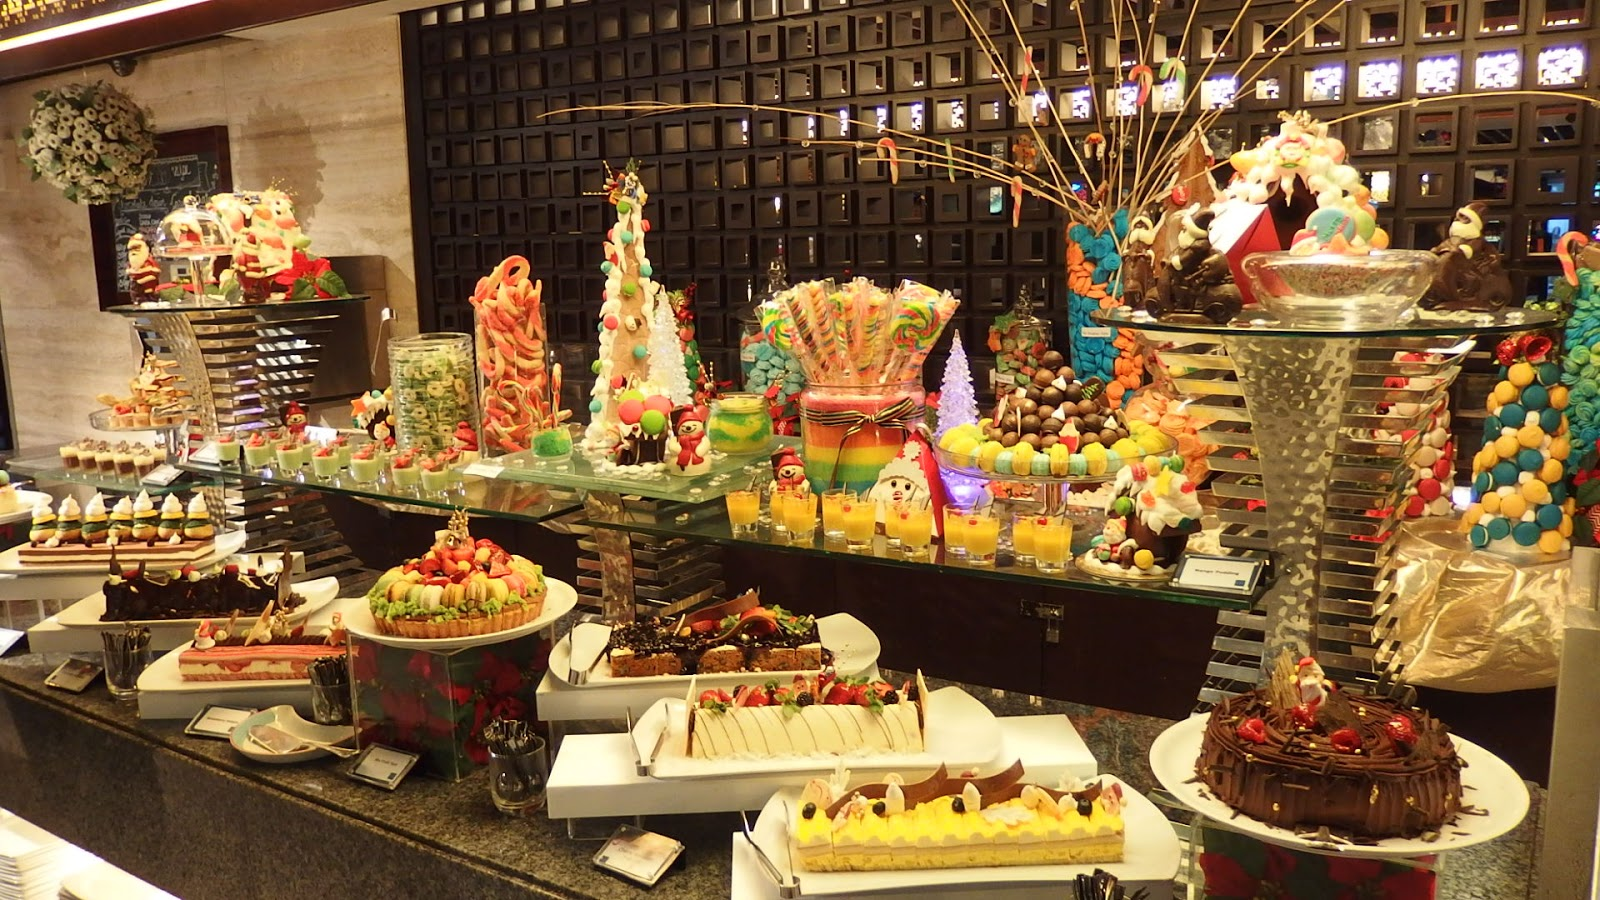 Lavish Buffet